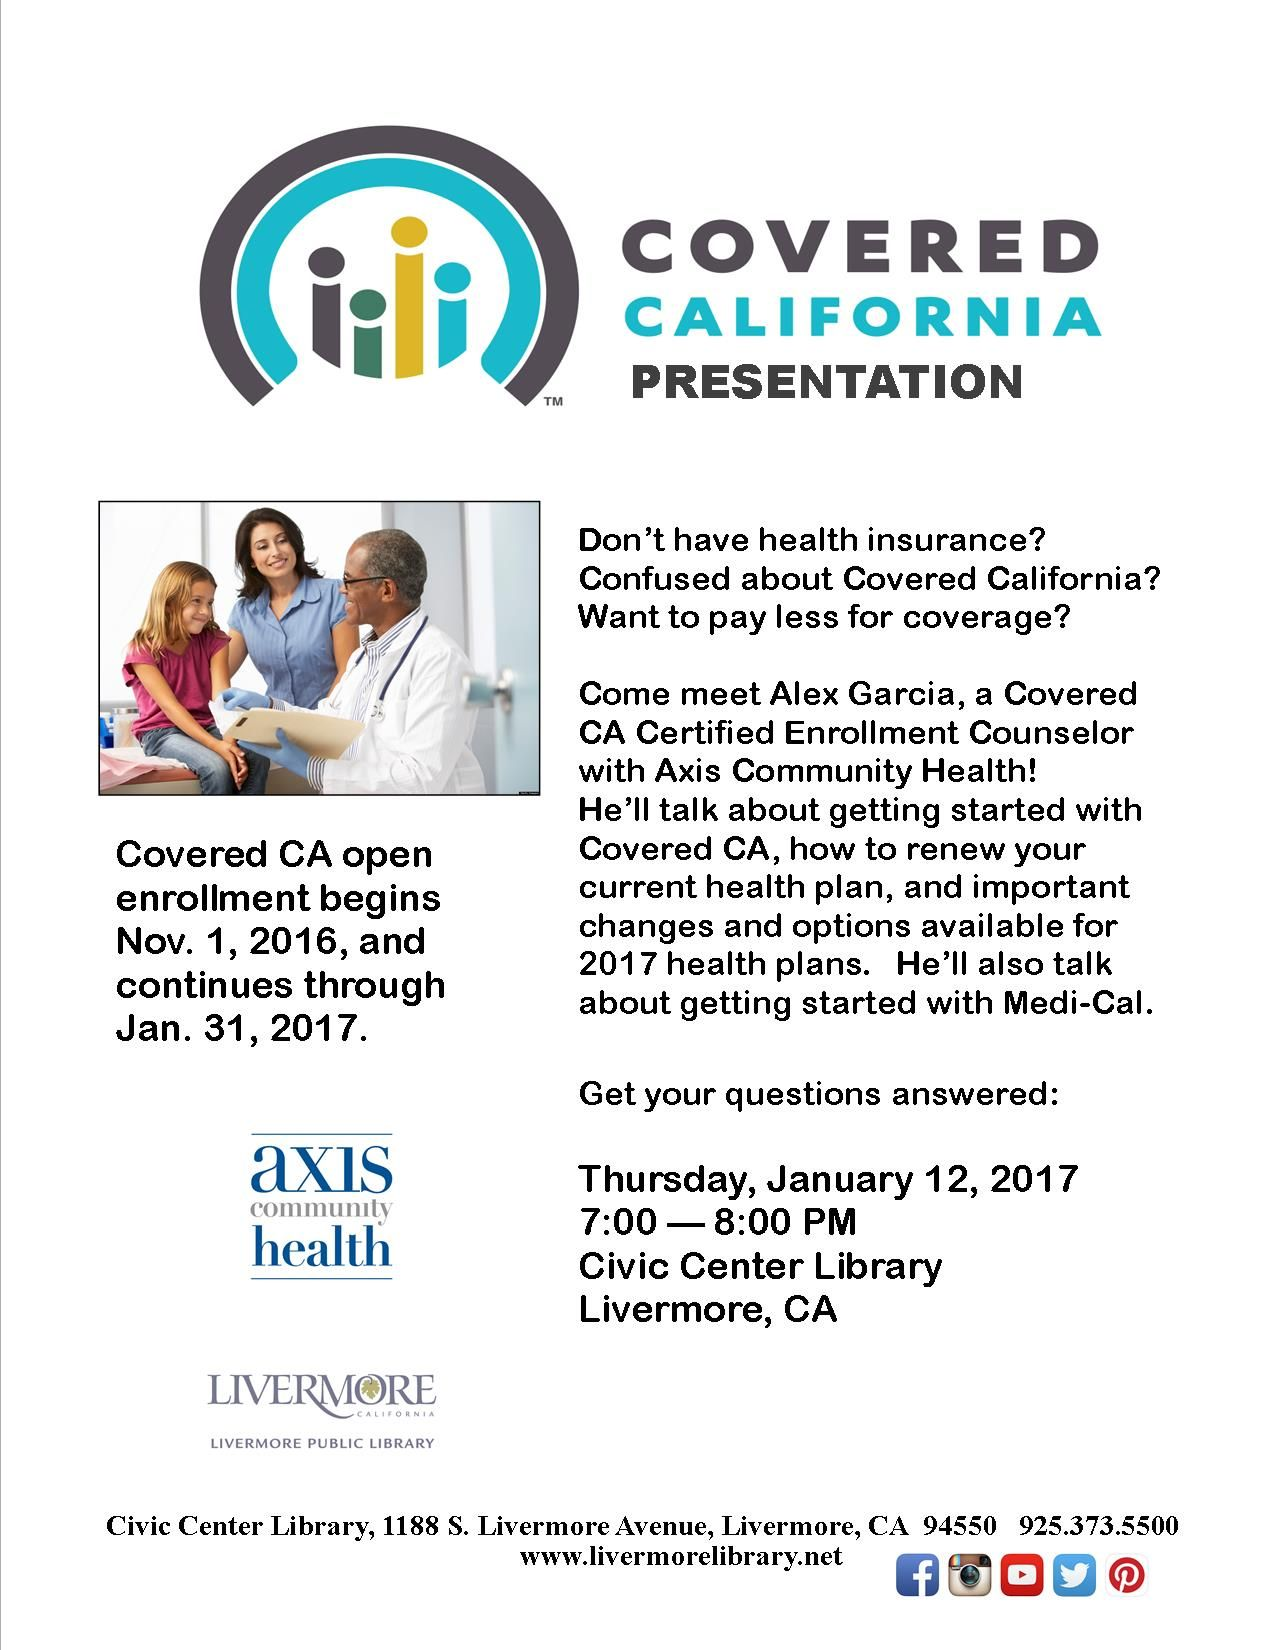 1 12 2017 7 8pm Covered California Presentation Don T Have Health Insurance Confused About Options Health Insurance Options Medical Insurance How To Plan